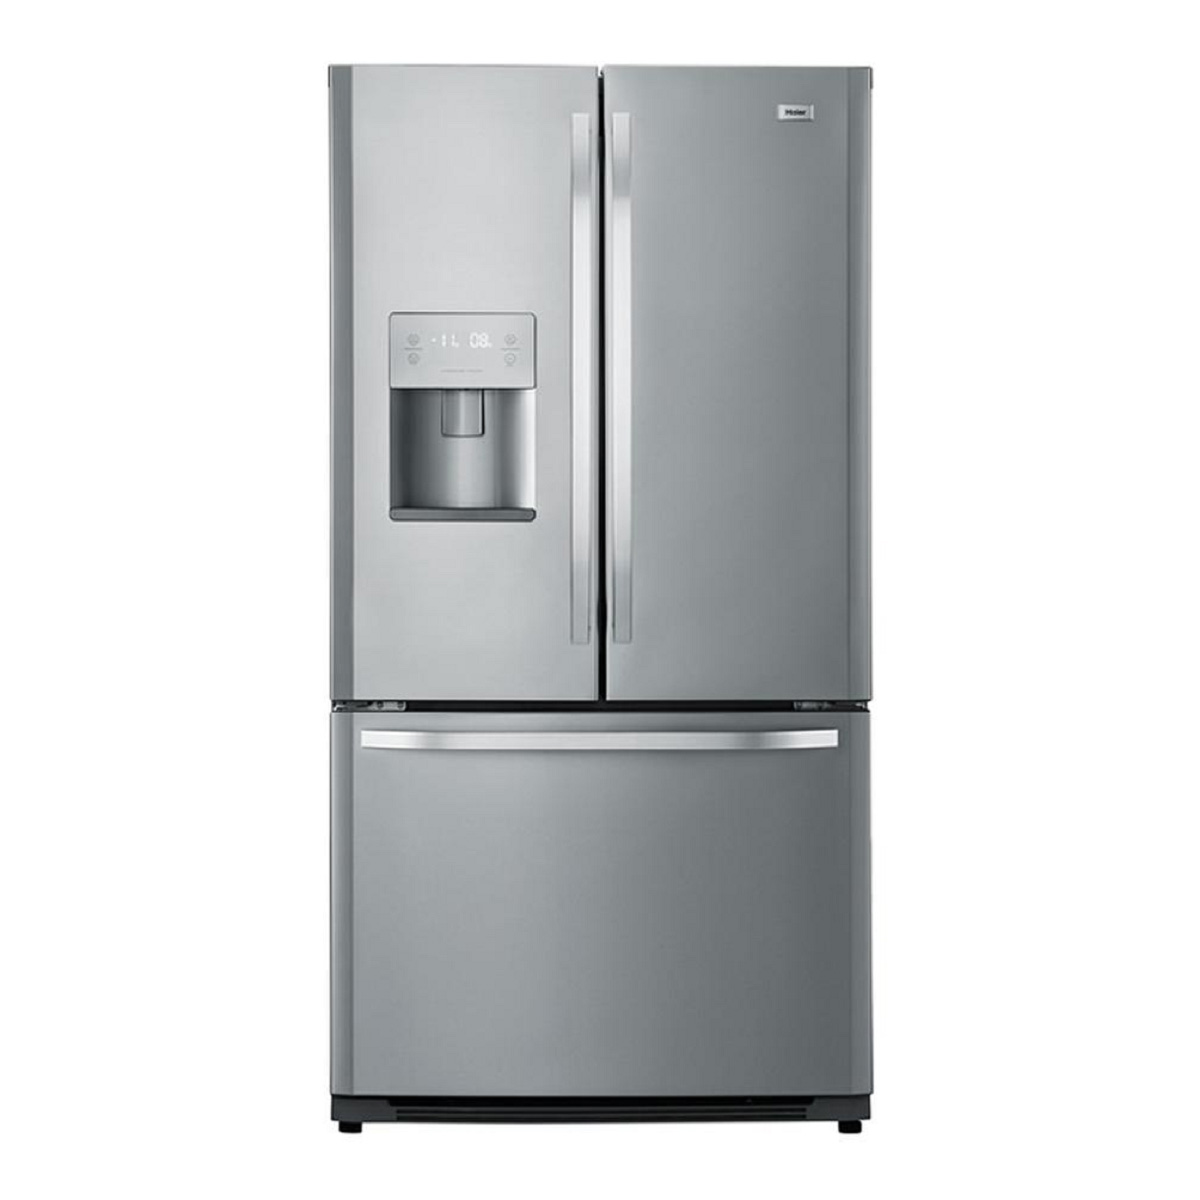 Haier HTD635WISS 635L French Door Fridge